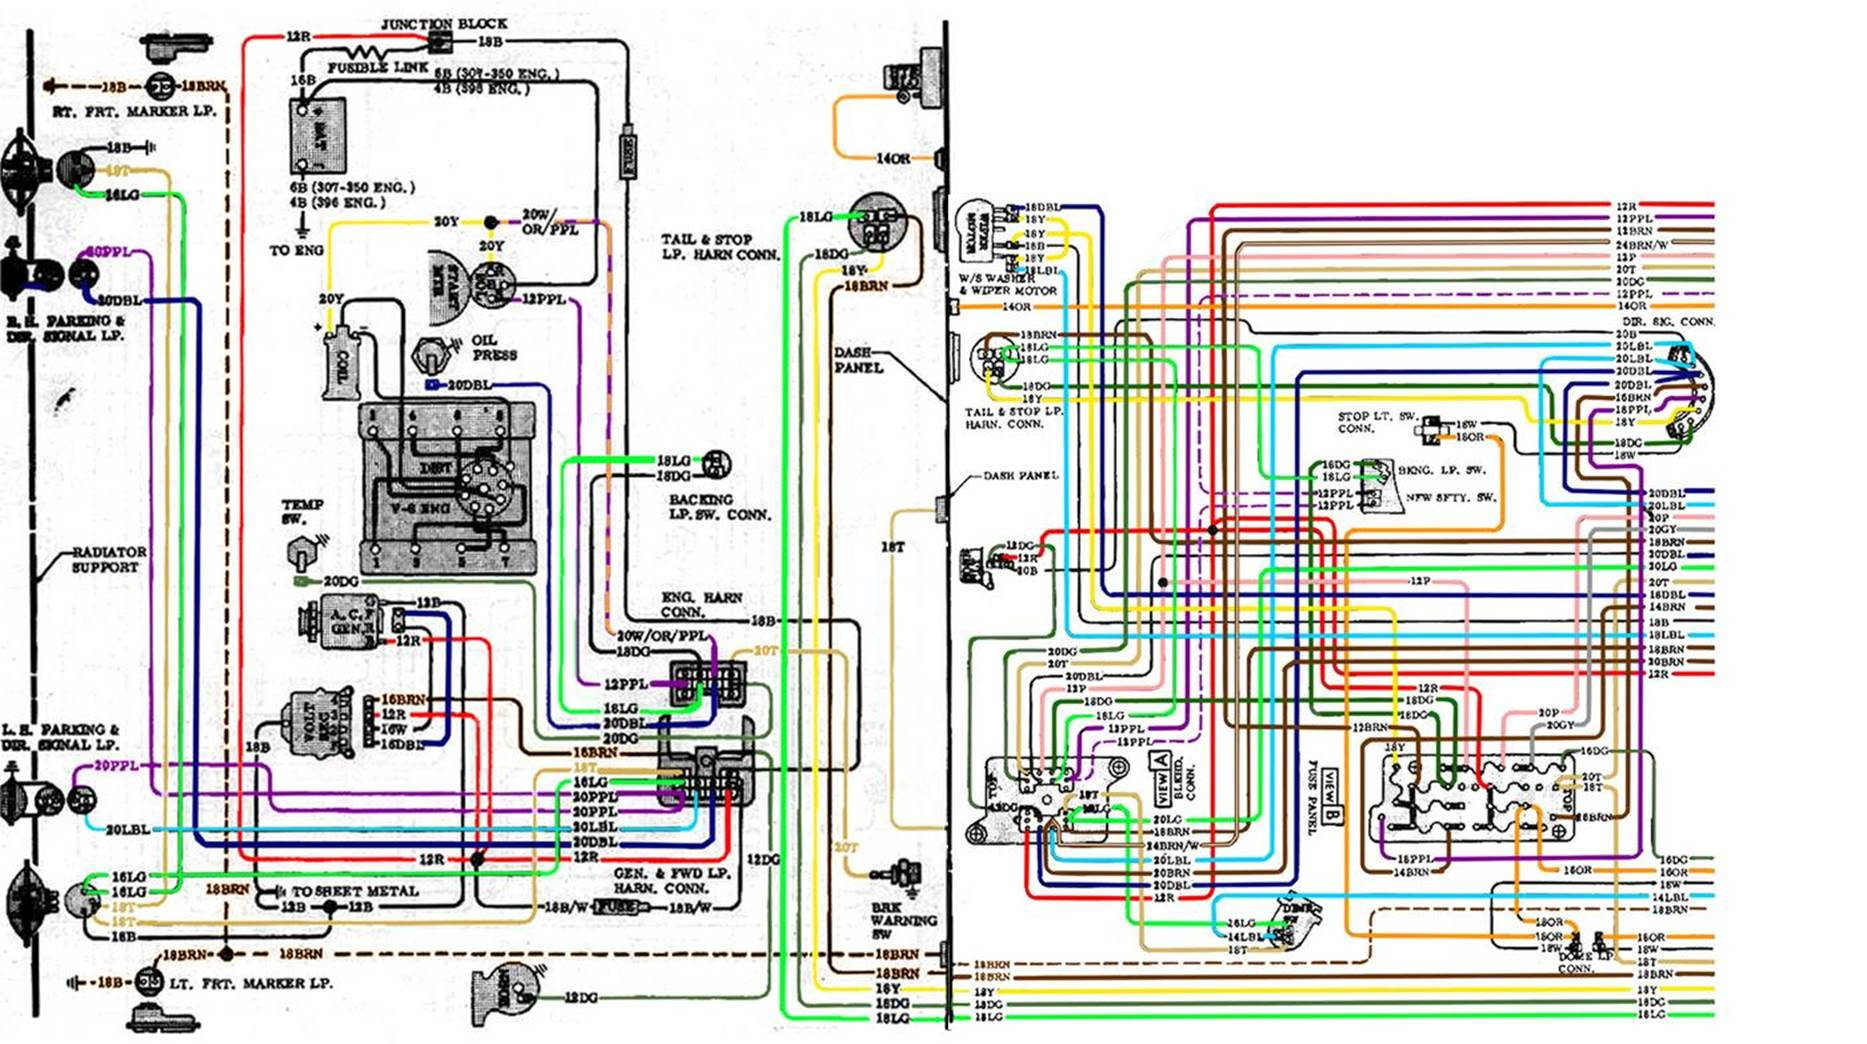 67 72 Chevy Wiring Diagram 1966 Chevelle Dash Wiring Diagram 67 Chevelle  Wiring Diagram